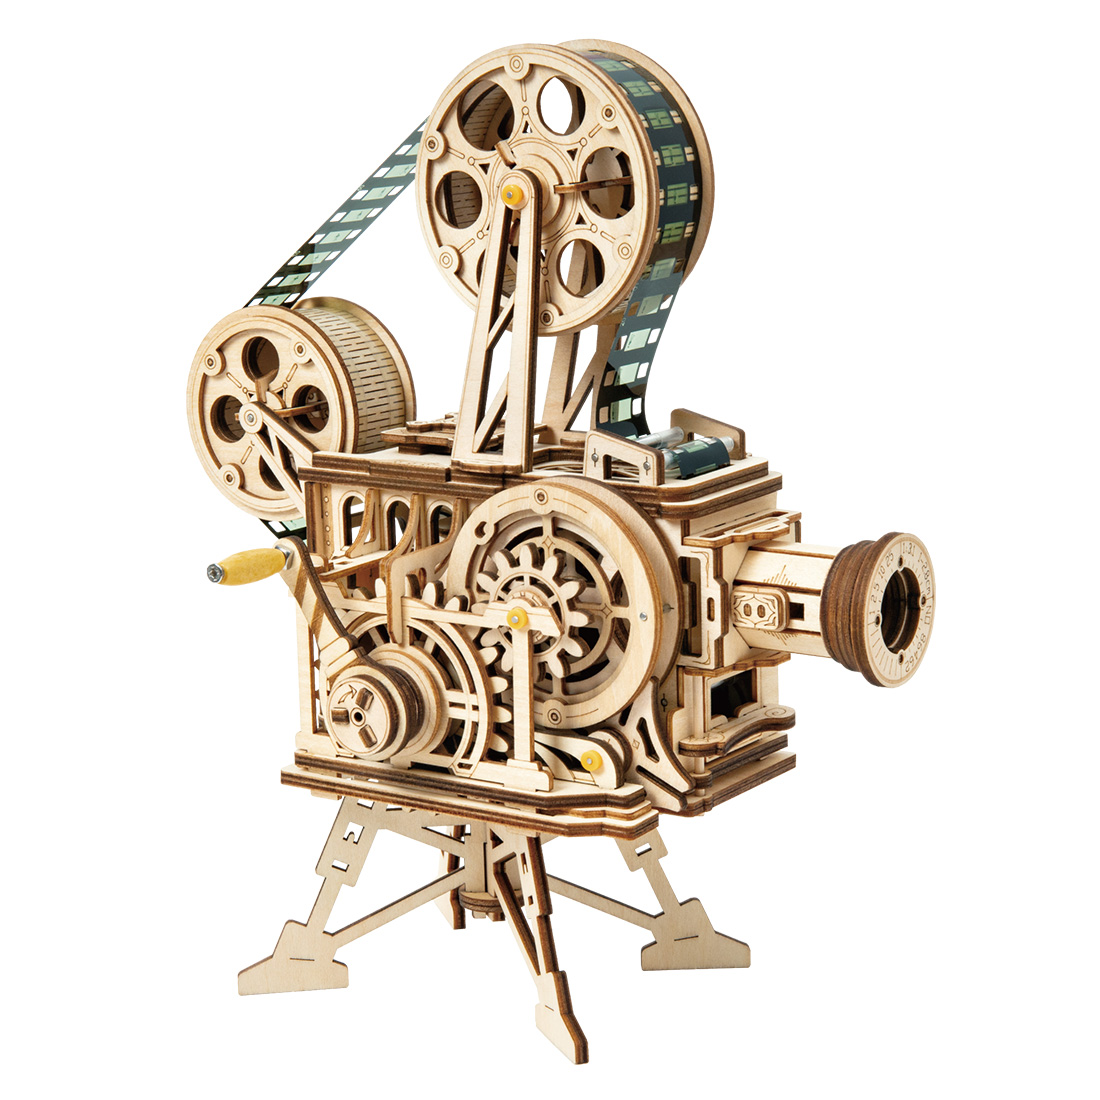 Robotime Hand Crank Diy 3D Flim Projector Wooden Puzzle Game Assembly Toy Birthday Gift For Children Adult LK601 2019 New